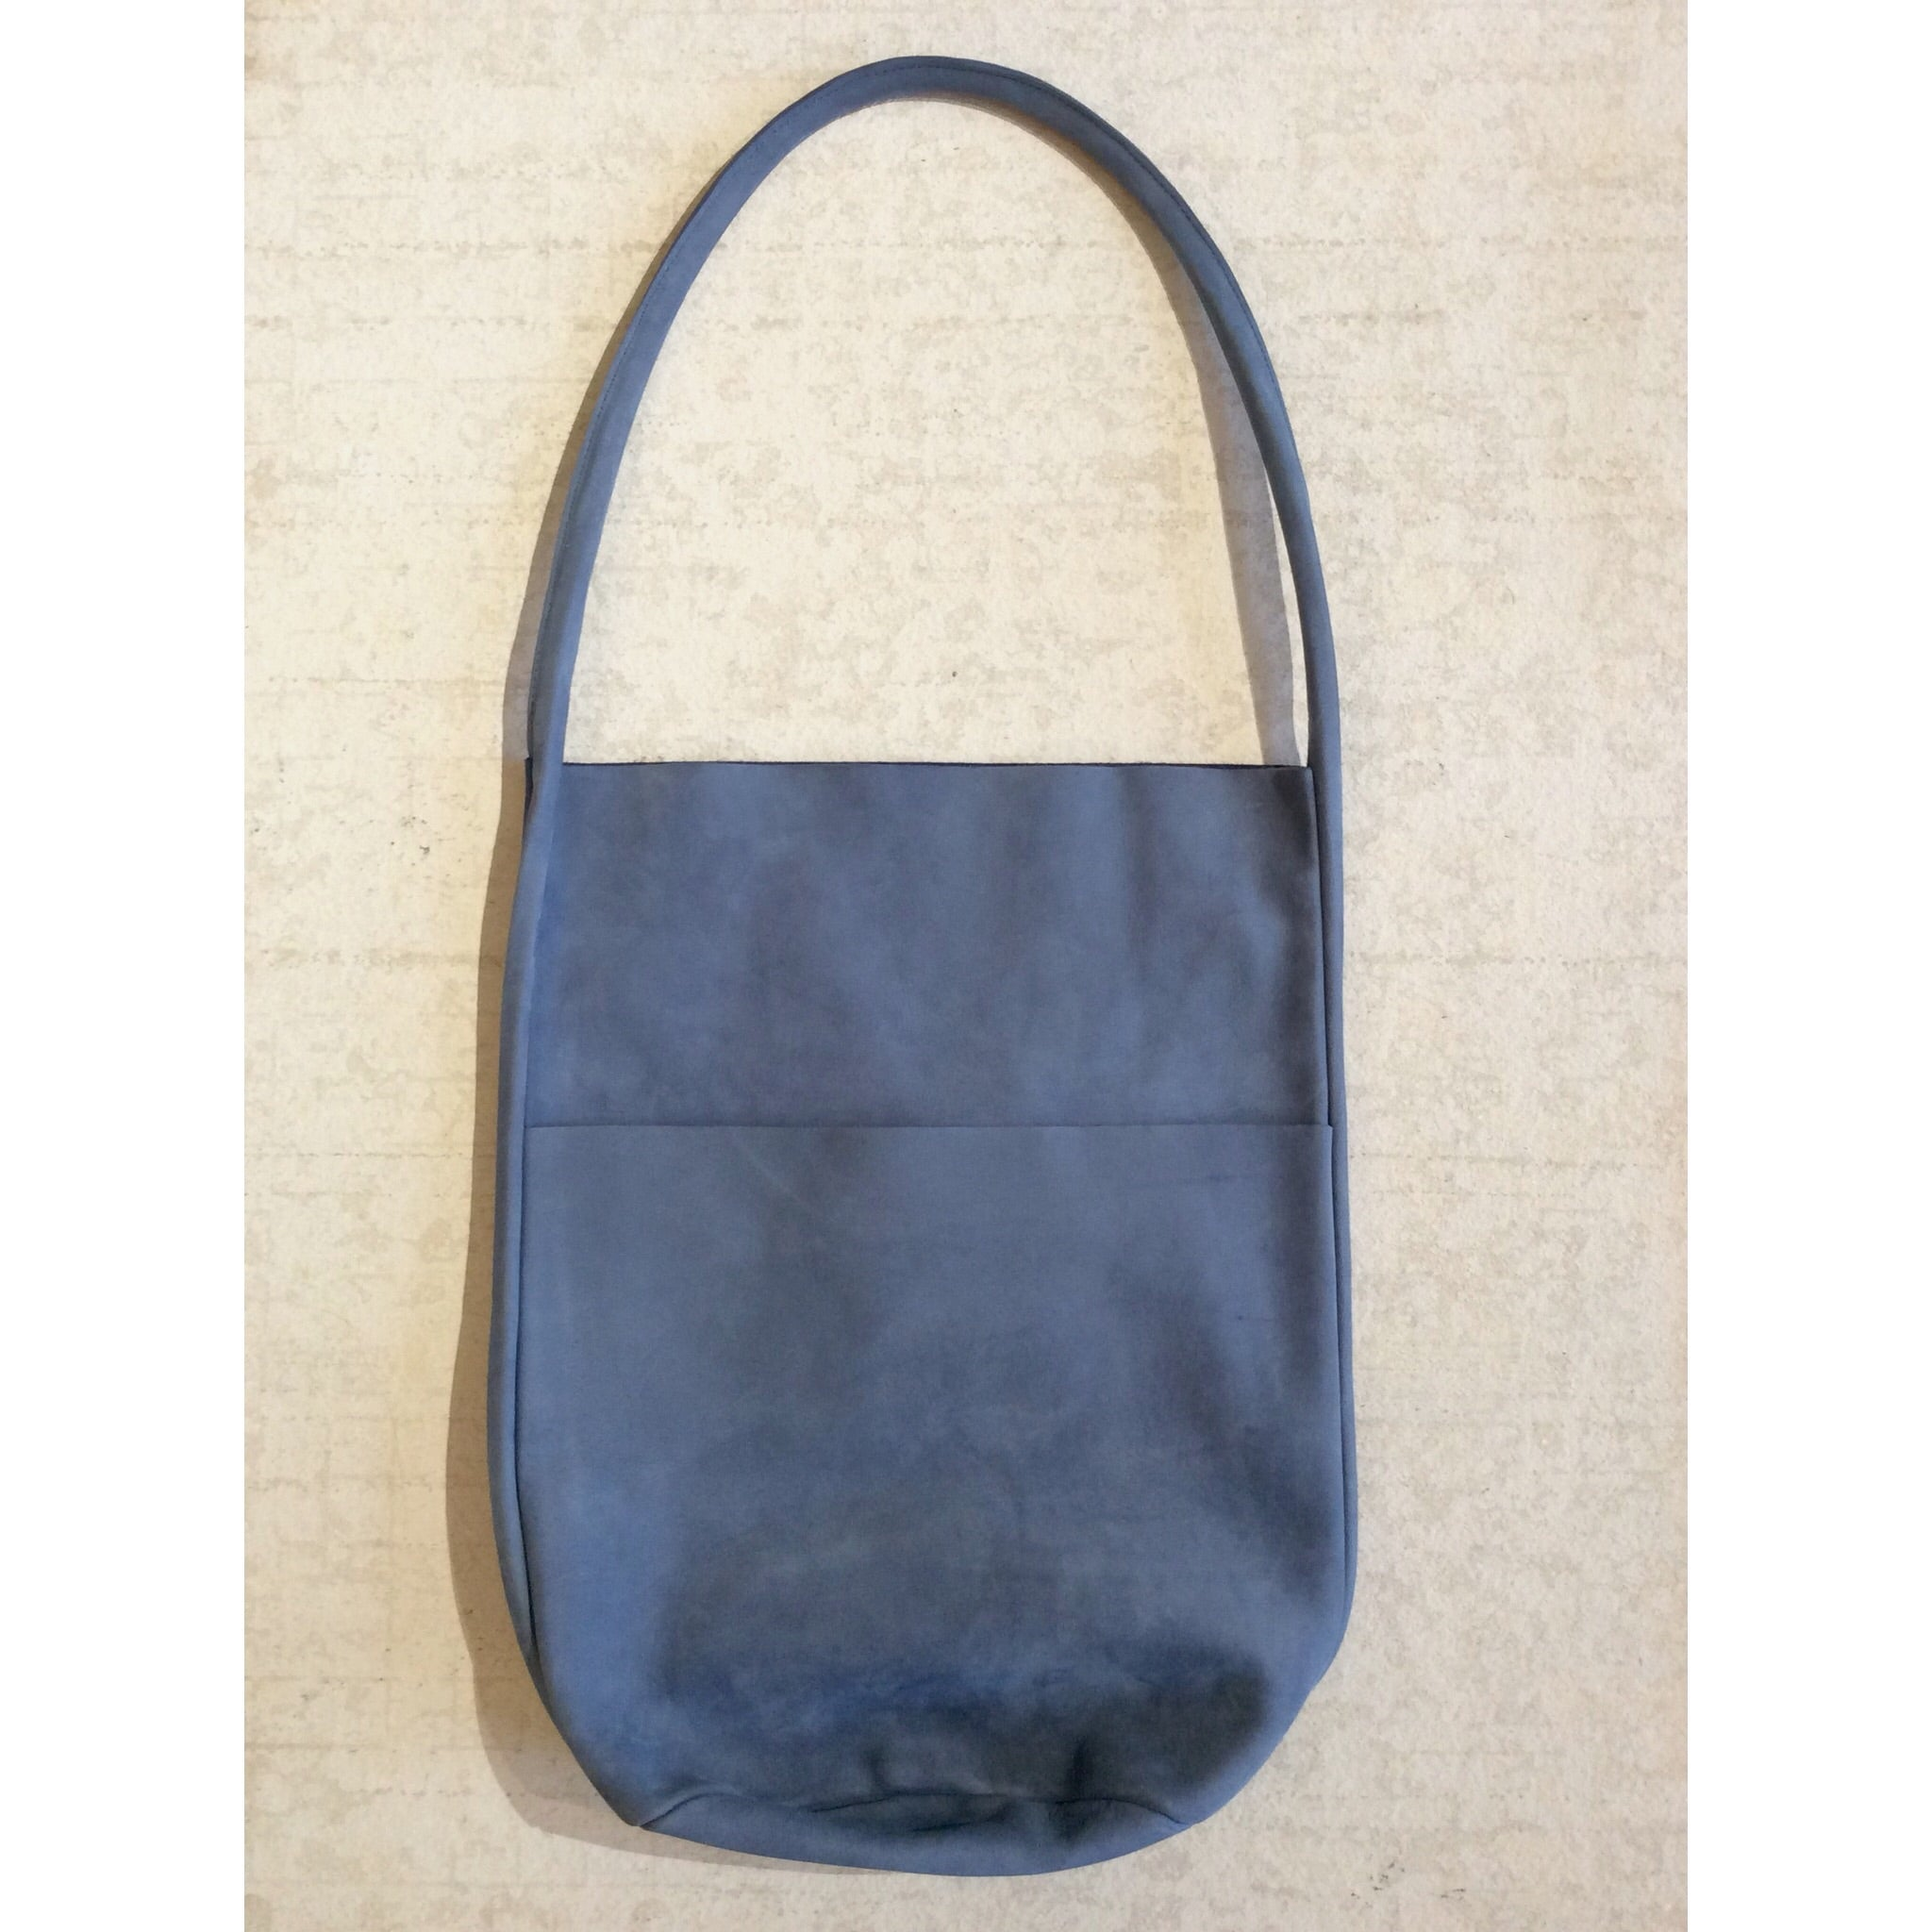 BODY SCULPTURES LEATHER SHOPPER BAG / BLUE SUEDE